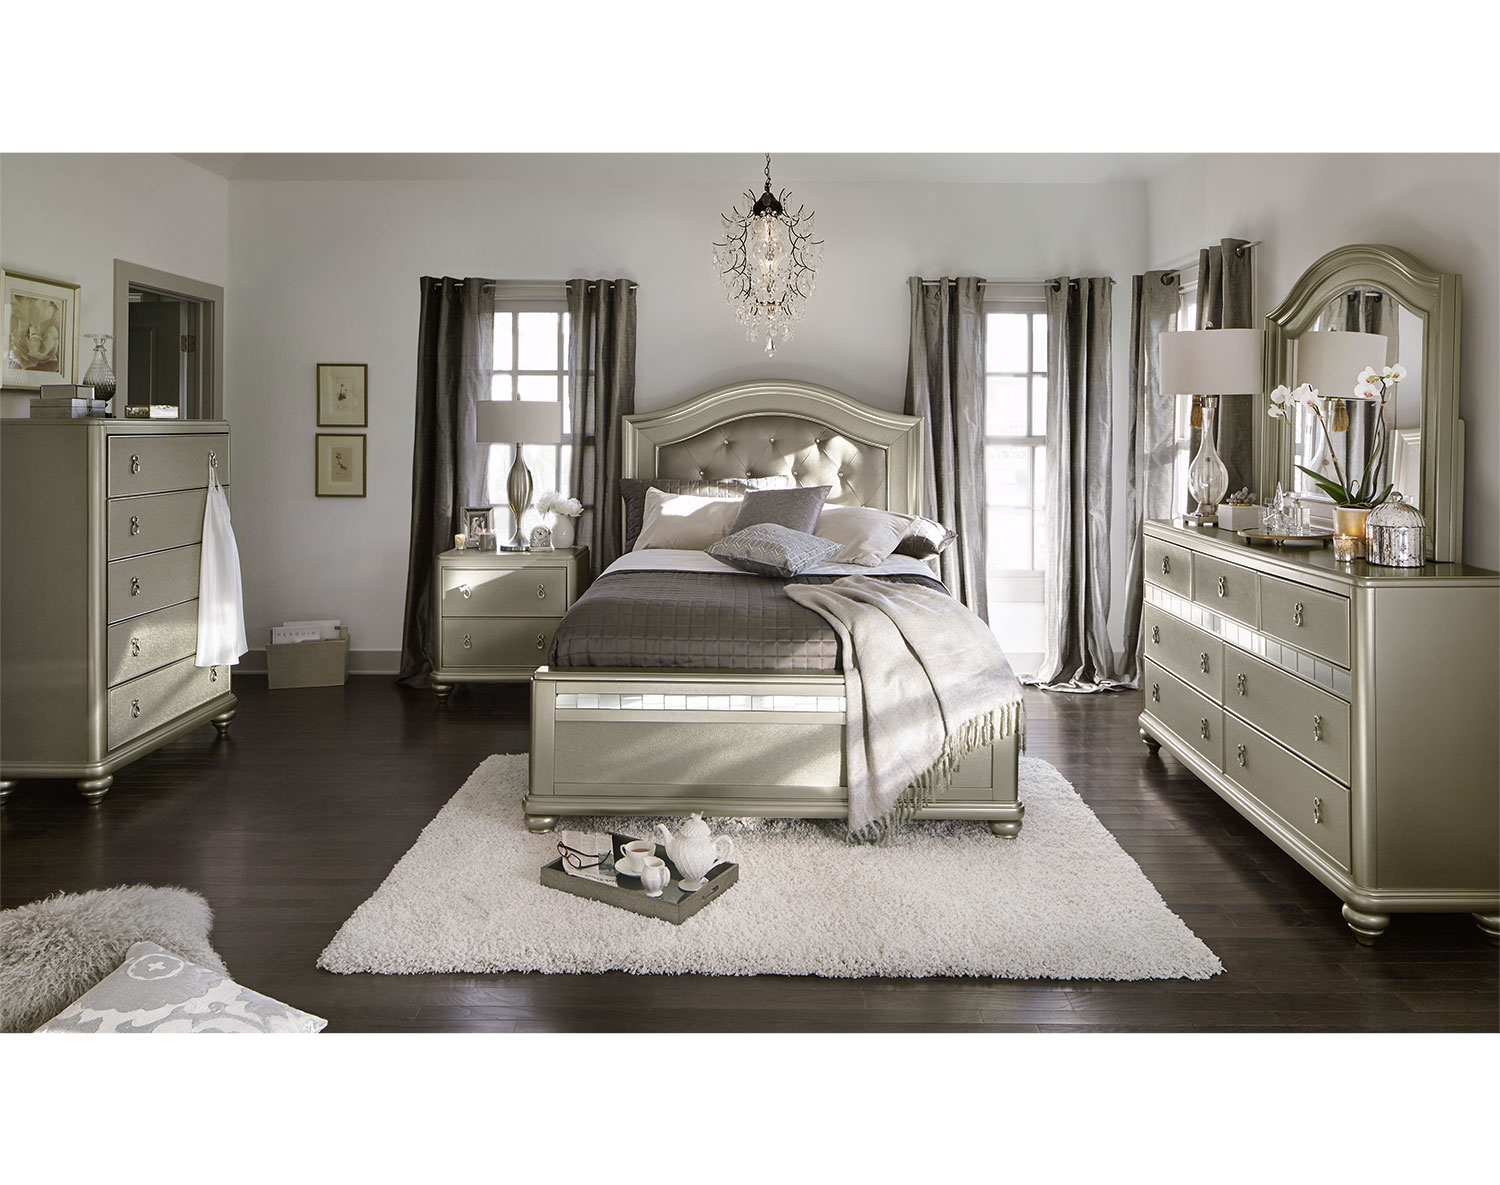 The Serena Collection Platinum Value City Furniture and Mattresses